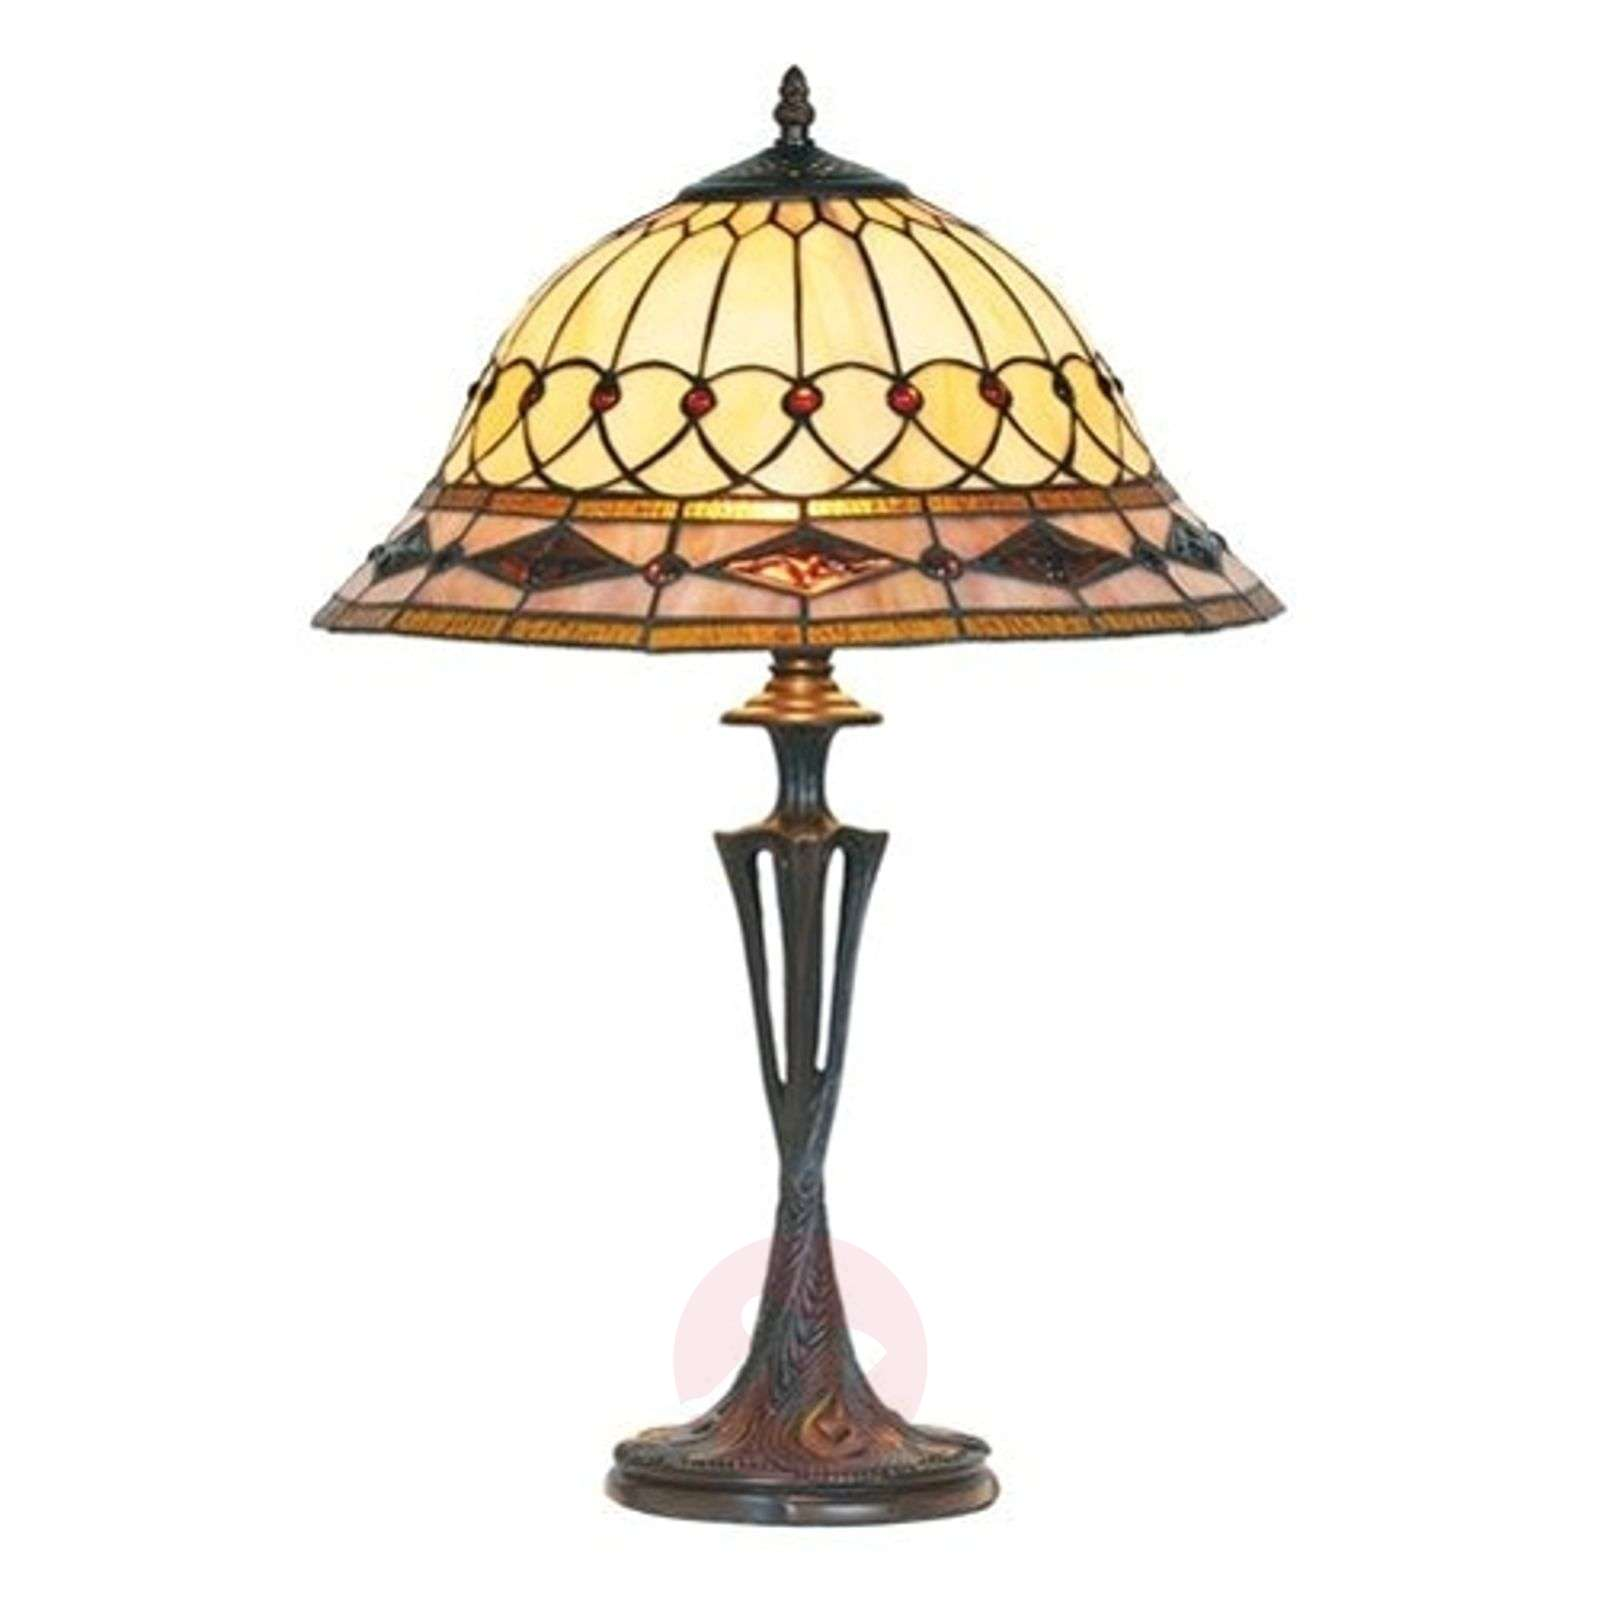 High-quality table lamp Kassandra, 59 cm-1032117-01